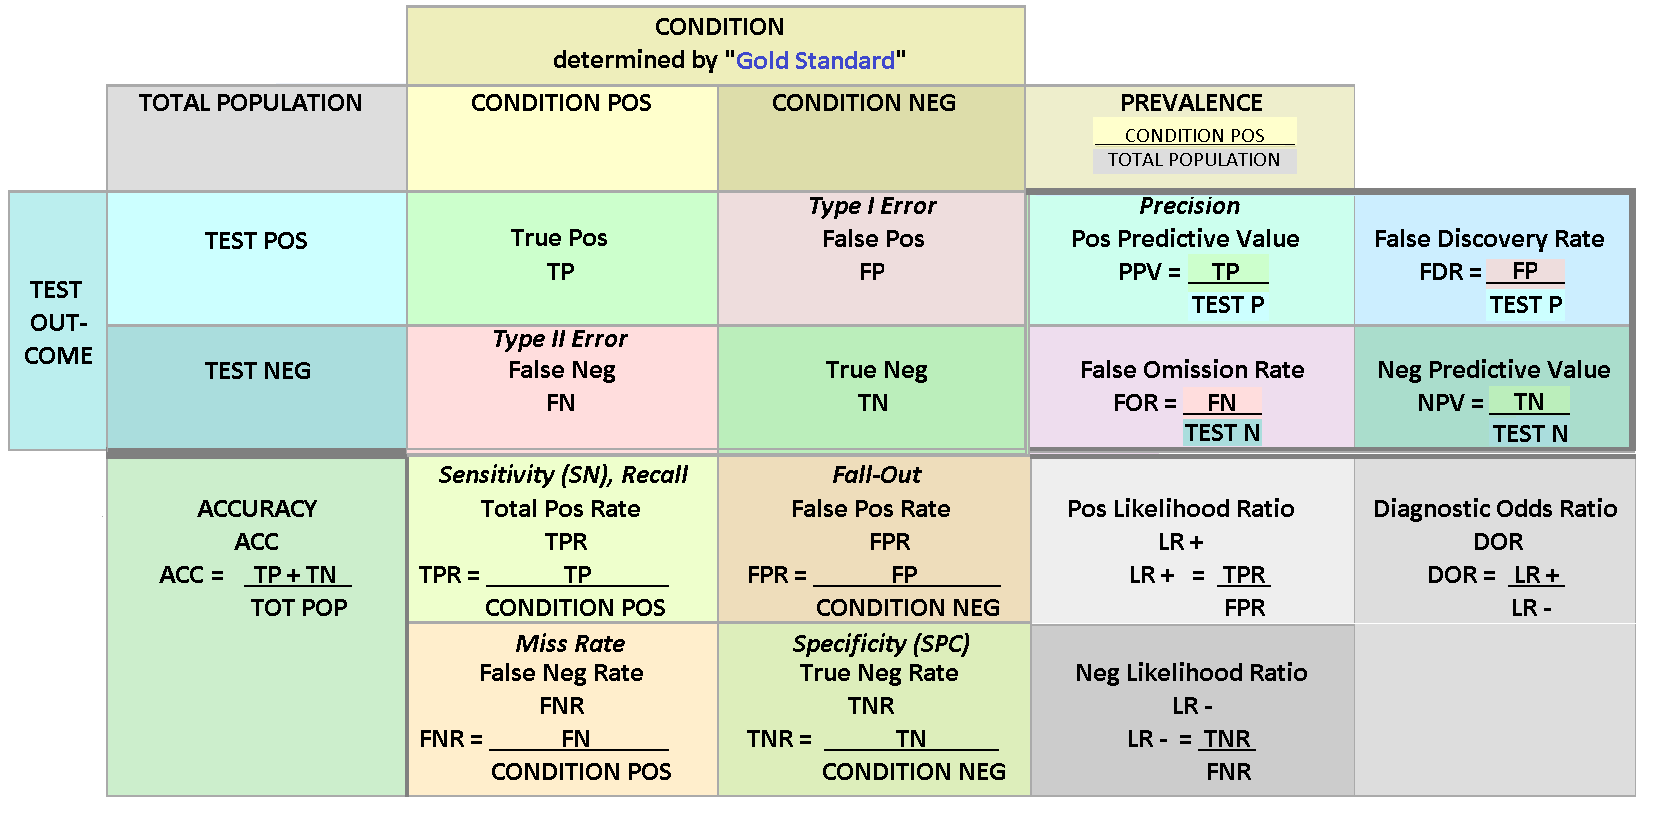 https://commons.wikimedia.org/wiki/File:Preventive_Medicine_-_Statistics_Sensitivity_TPR,_Specificity_TNR,_PPV,_NPV,_FDR,_FOR,_ACCuracy,_Likelihood_Ratio,_Diagnostic_Odds_Ratio_2_Final_wiki.png